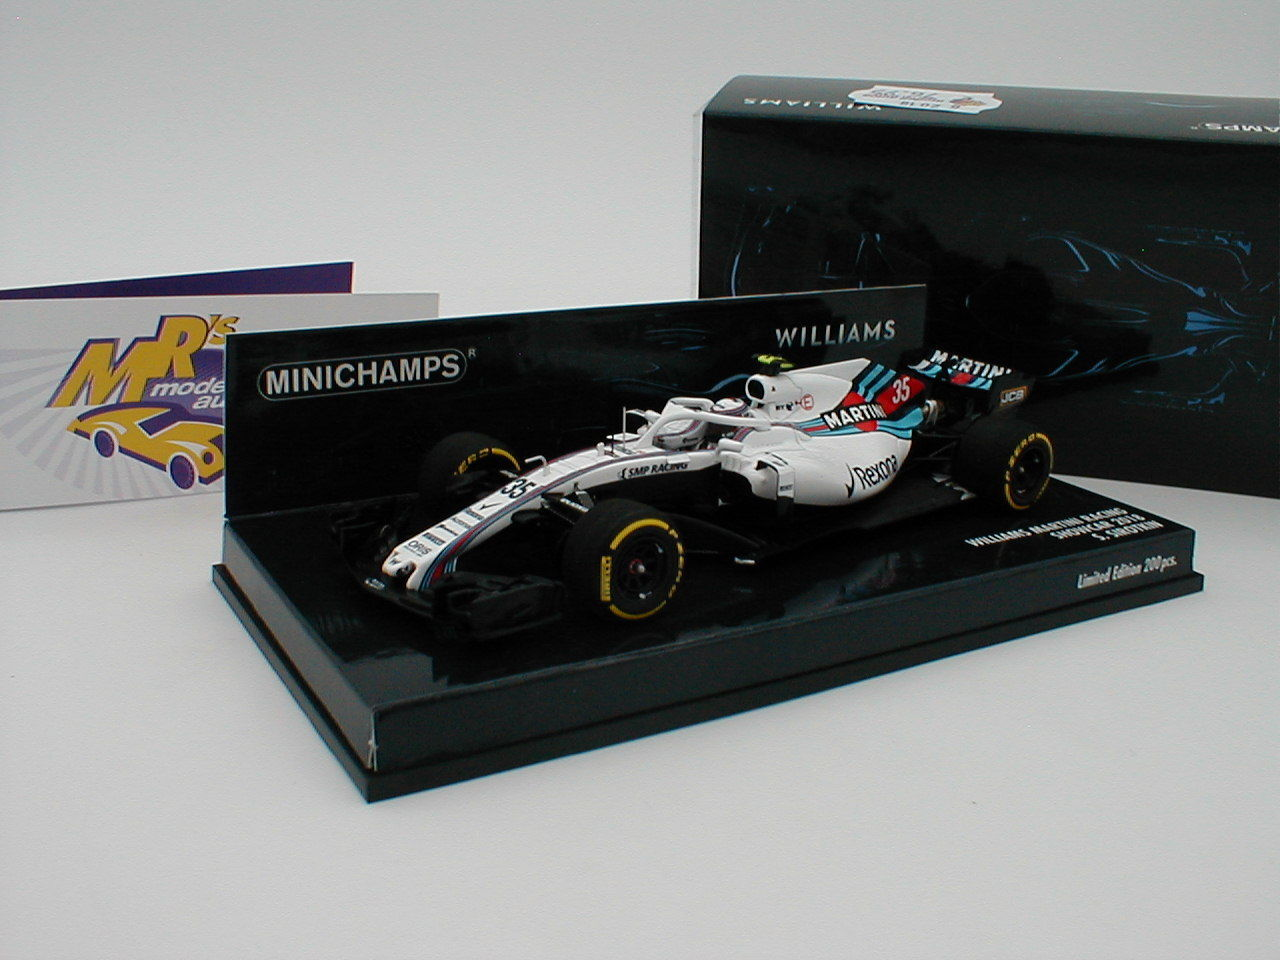 MINICHAMPS 417189035-Williams Martini f1 team showcar 2018  S. Sirougekin  1 43